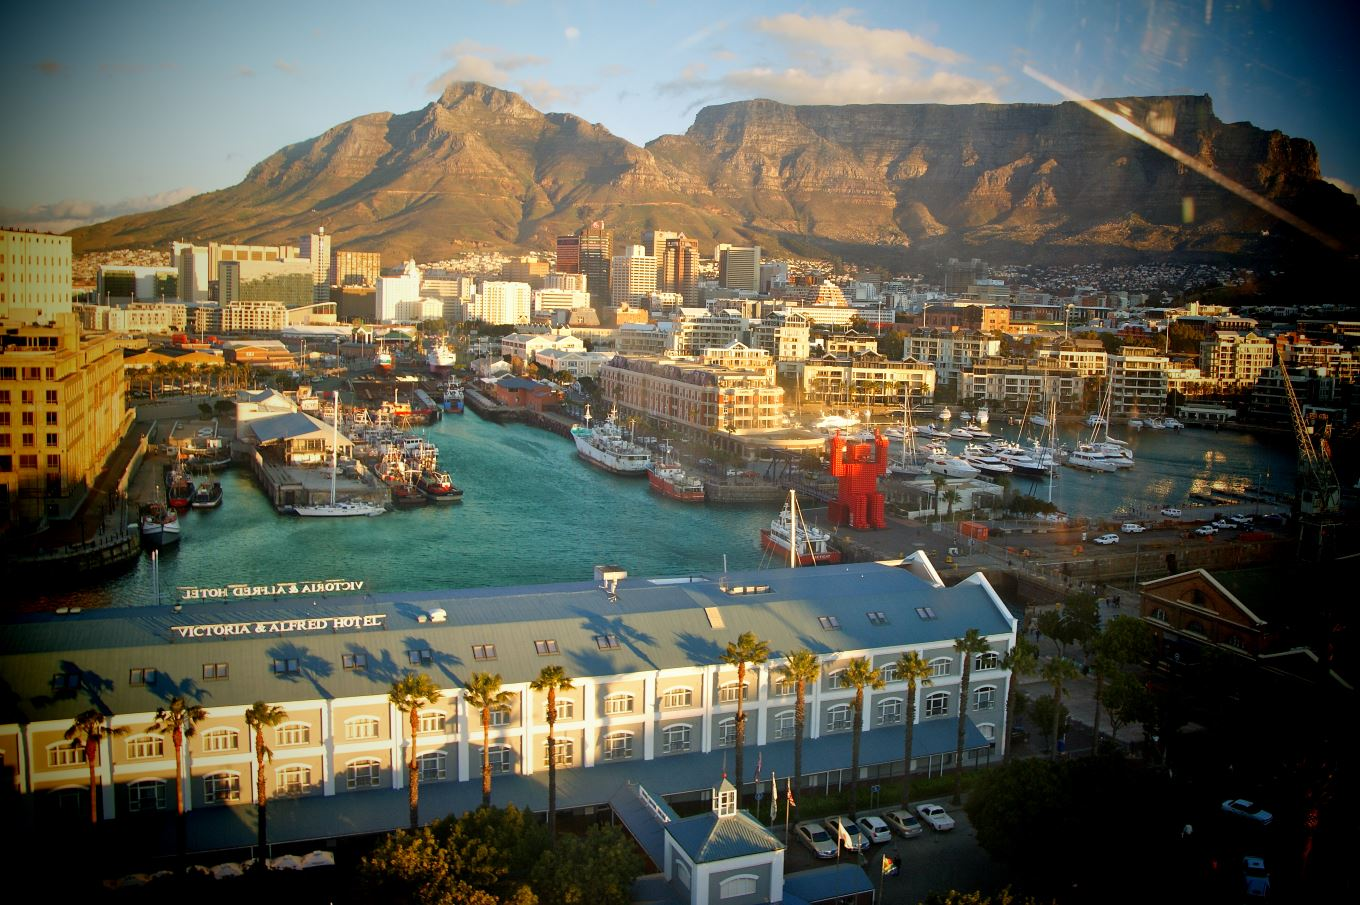 Cape Town with Table Mountain in South Africa with view Victoria & Alfred Hotel from V&A Waterfront